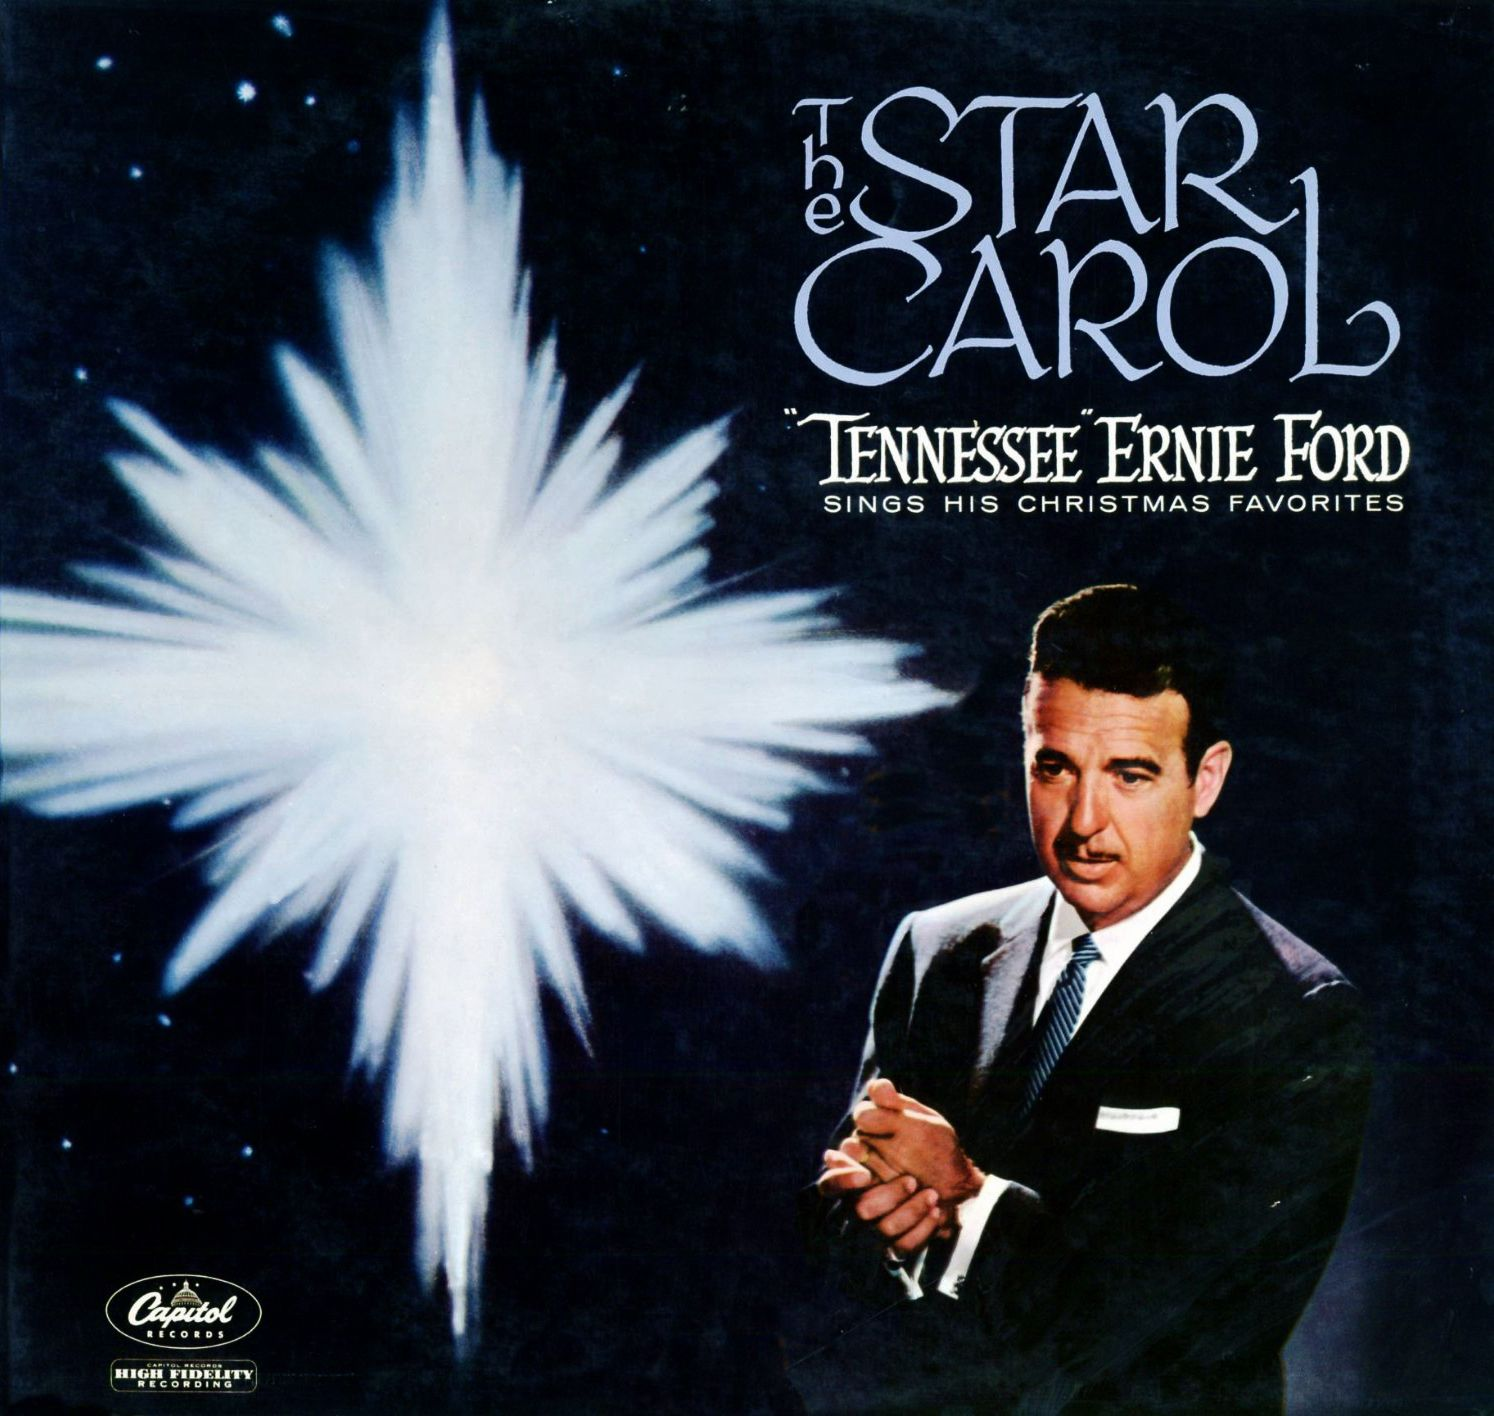 Tennessee Ernie Ford The Star Carol Christmas Albums 2